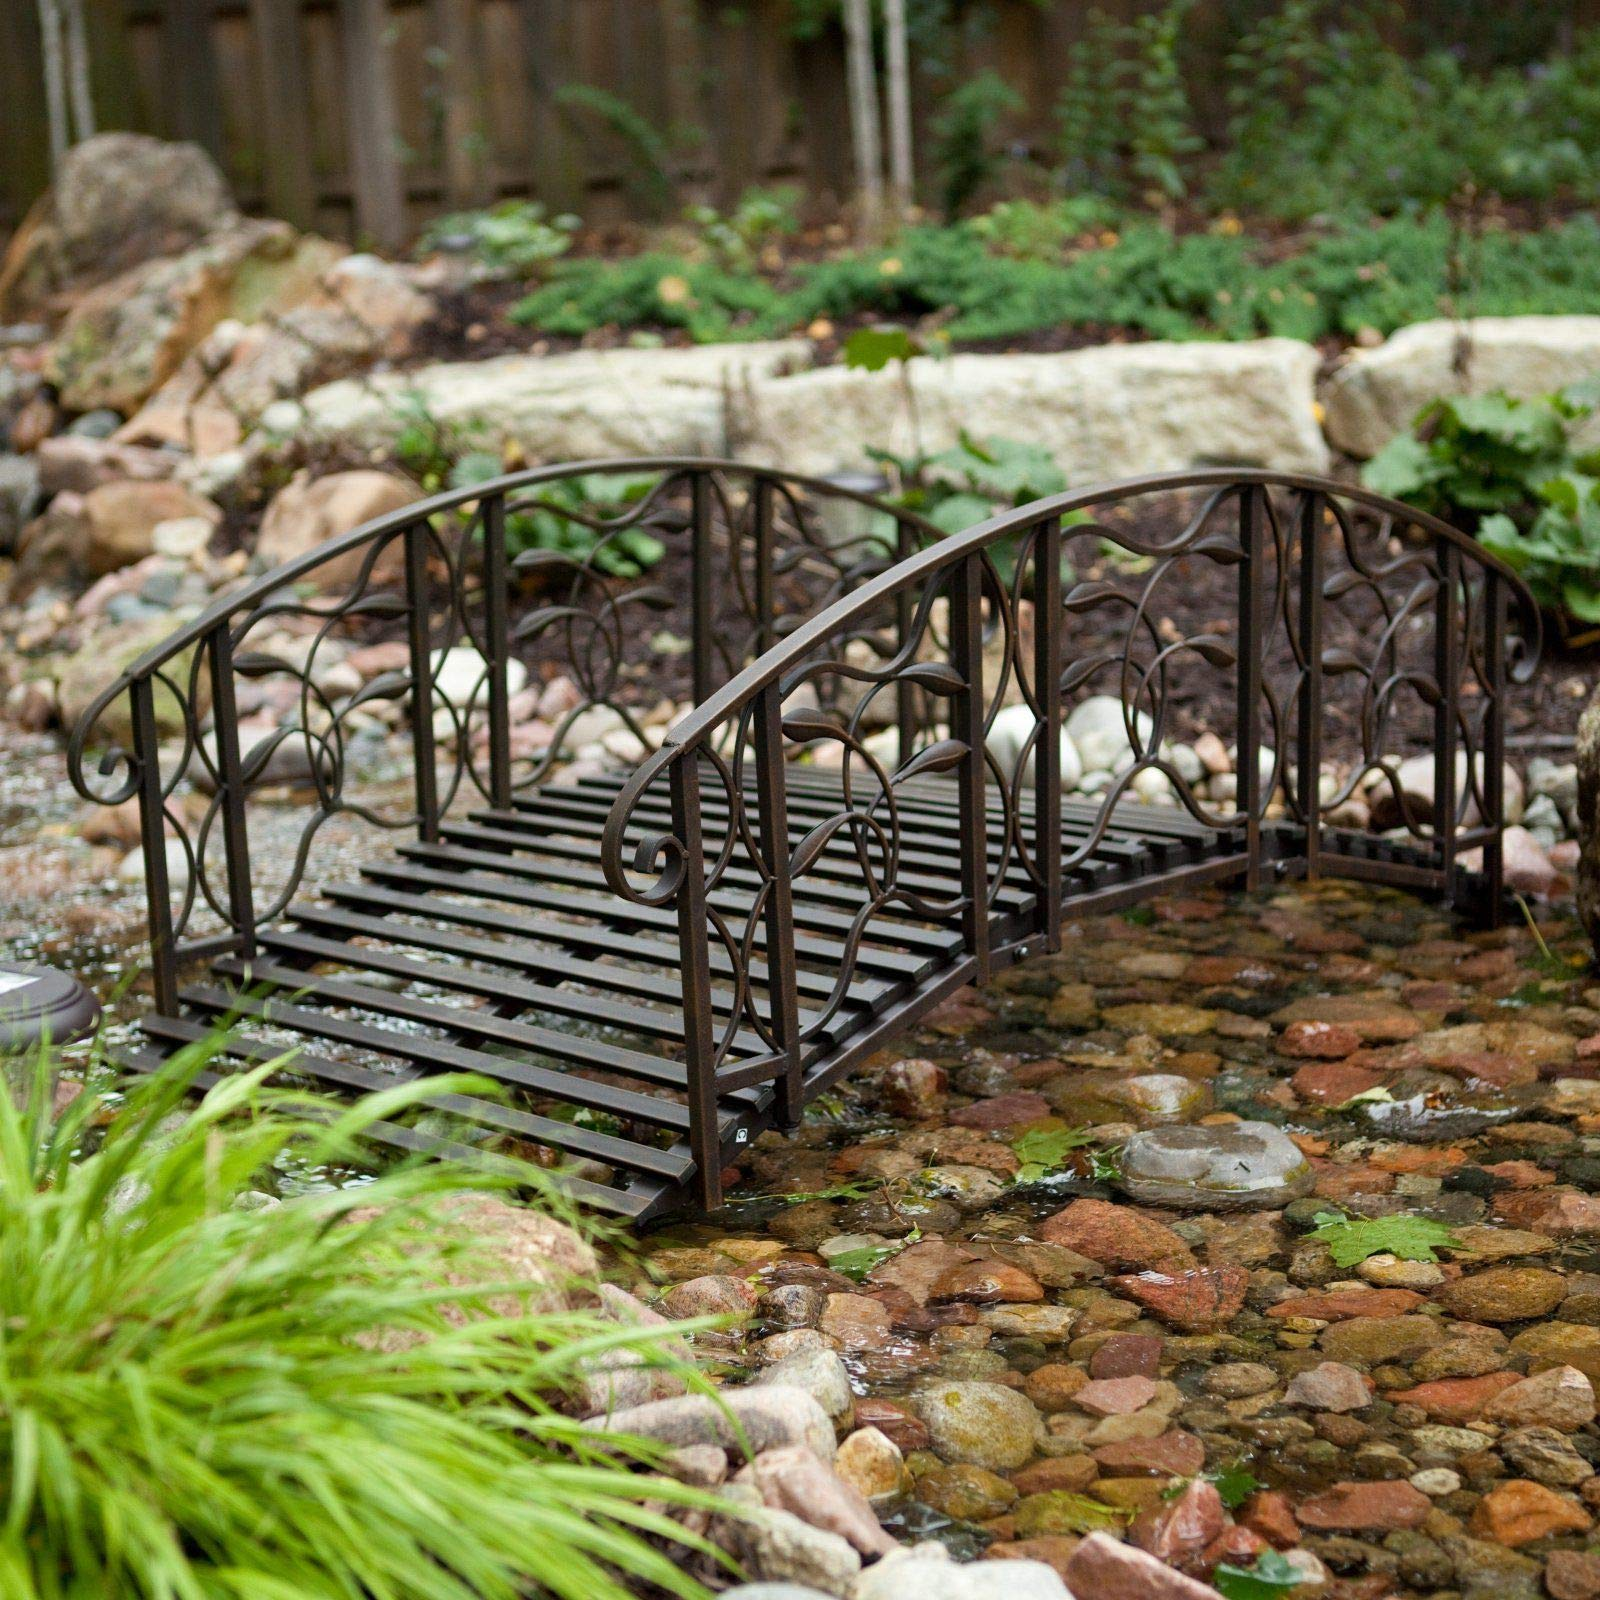 Home Improvements Weathered Black Finish Metal 4 Foot Garden Bridge Outdoor Yard Lawn Landscaping by Home Improvements (Image #3)